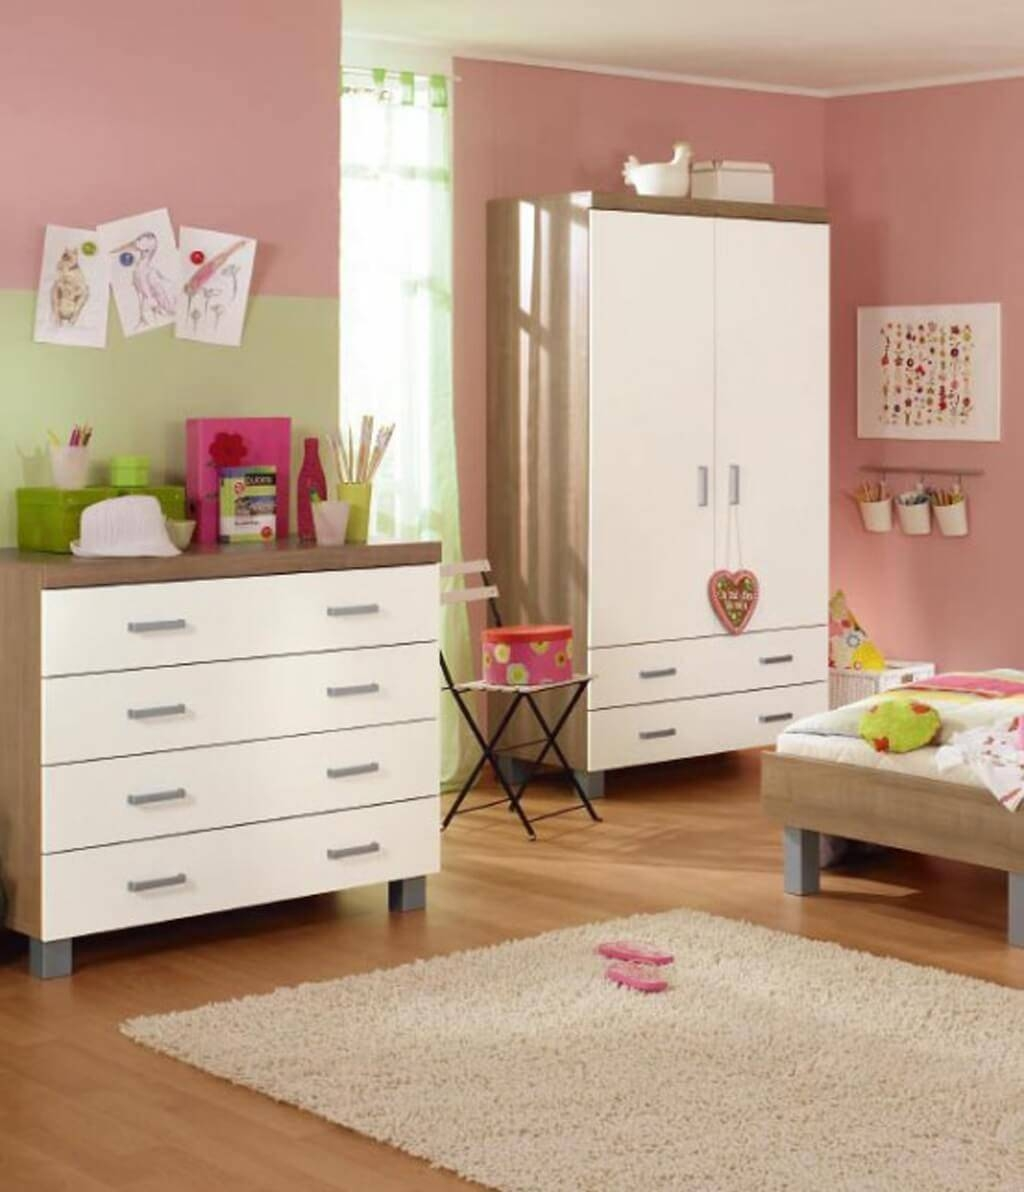 Furniture: Elegant Child Design Cribs With Lovely Floor Lamp And Intended For Cheap Baby Wardrobes (View 18 of 30)